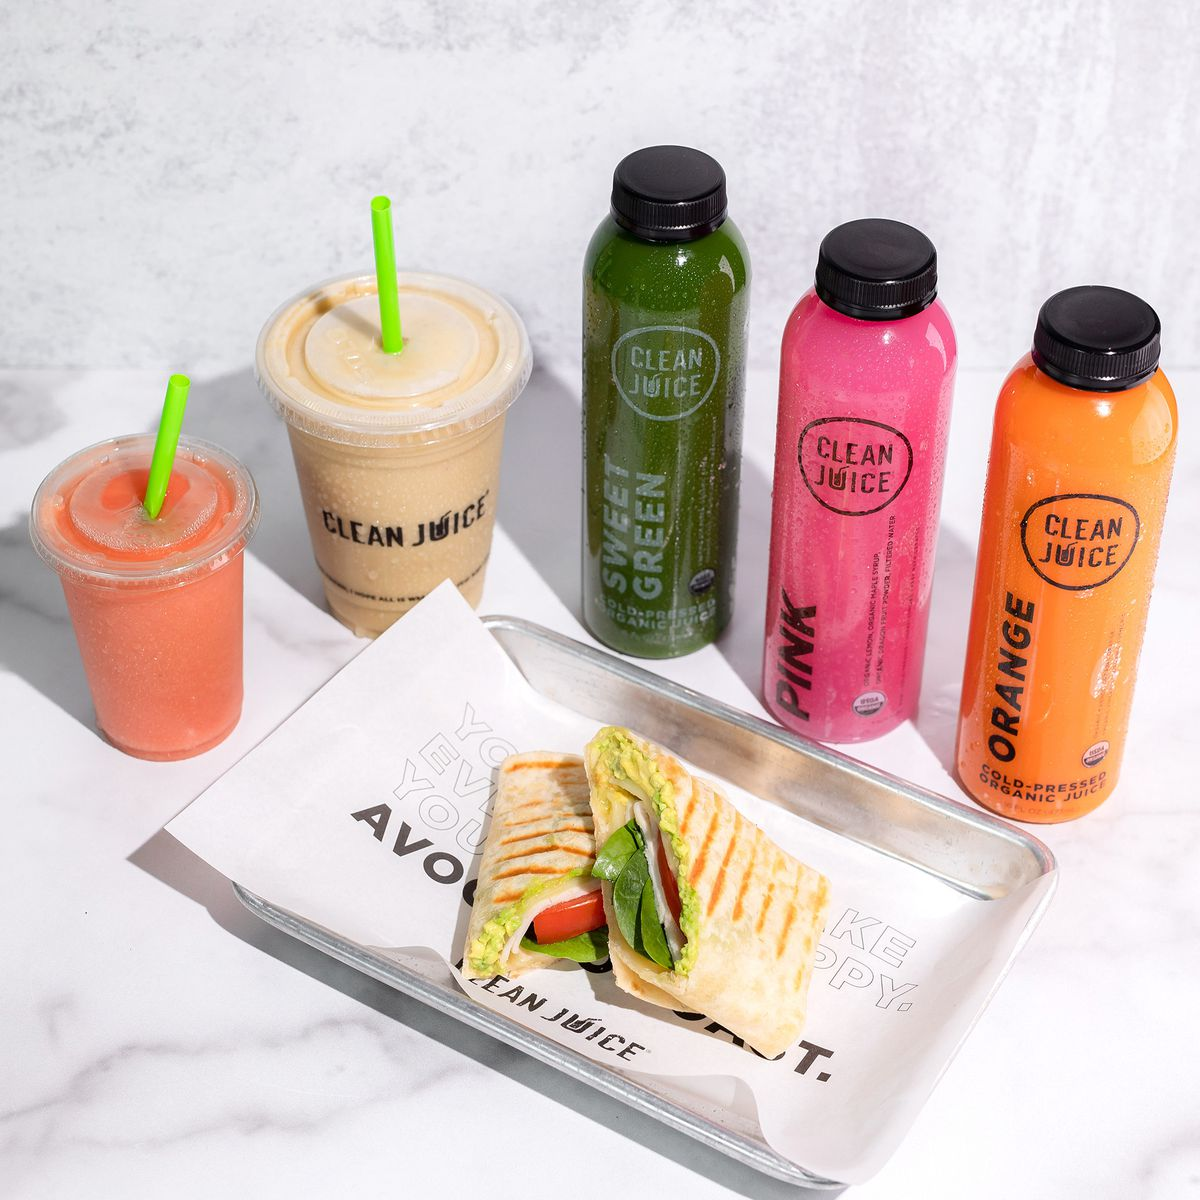 Colorful smoothies, cold-pressed juices, and wraps from Clean Juice.